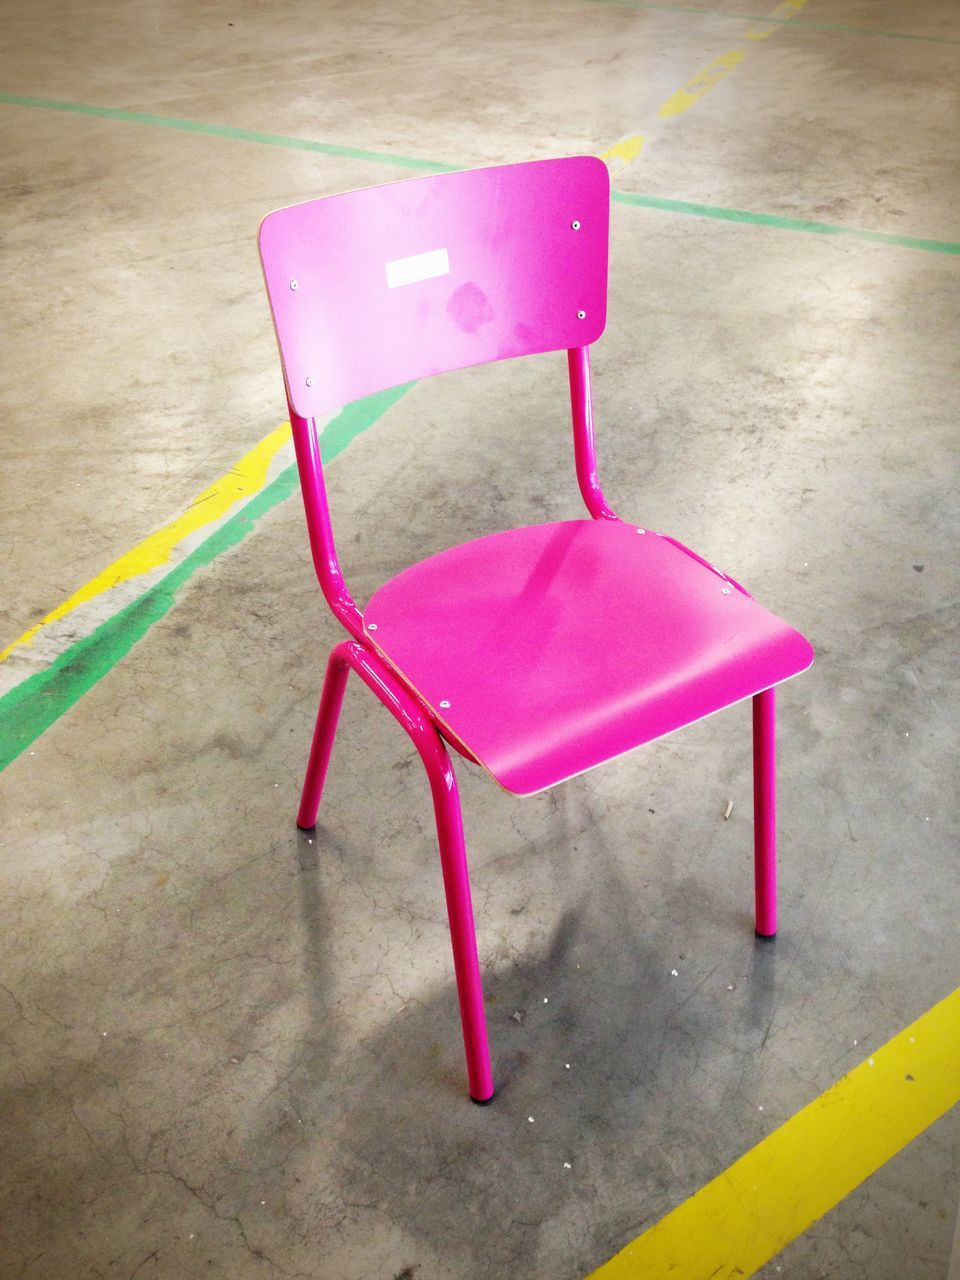 Empty pink chair in a room